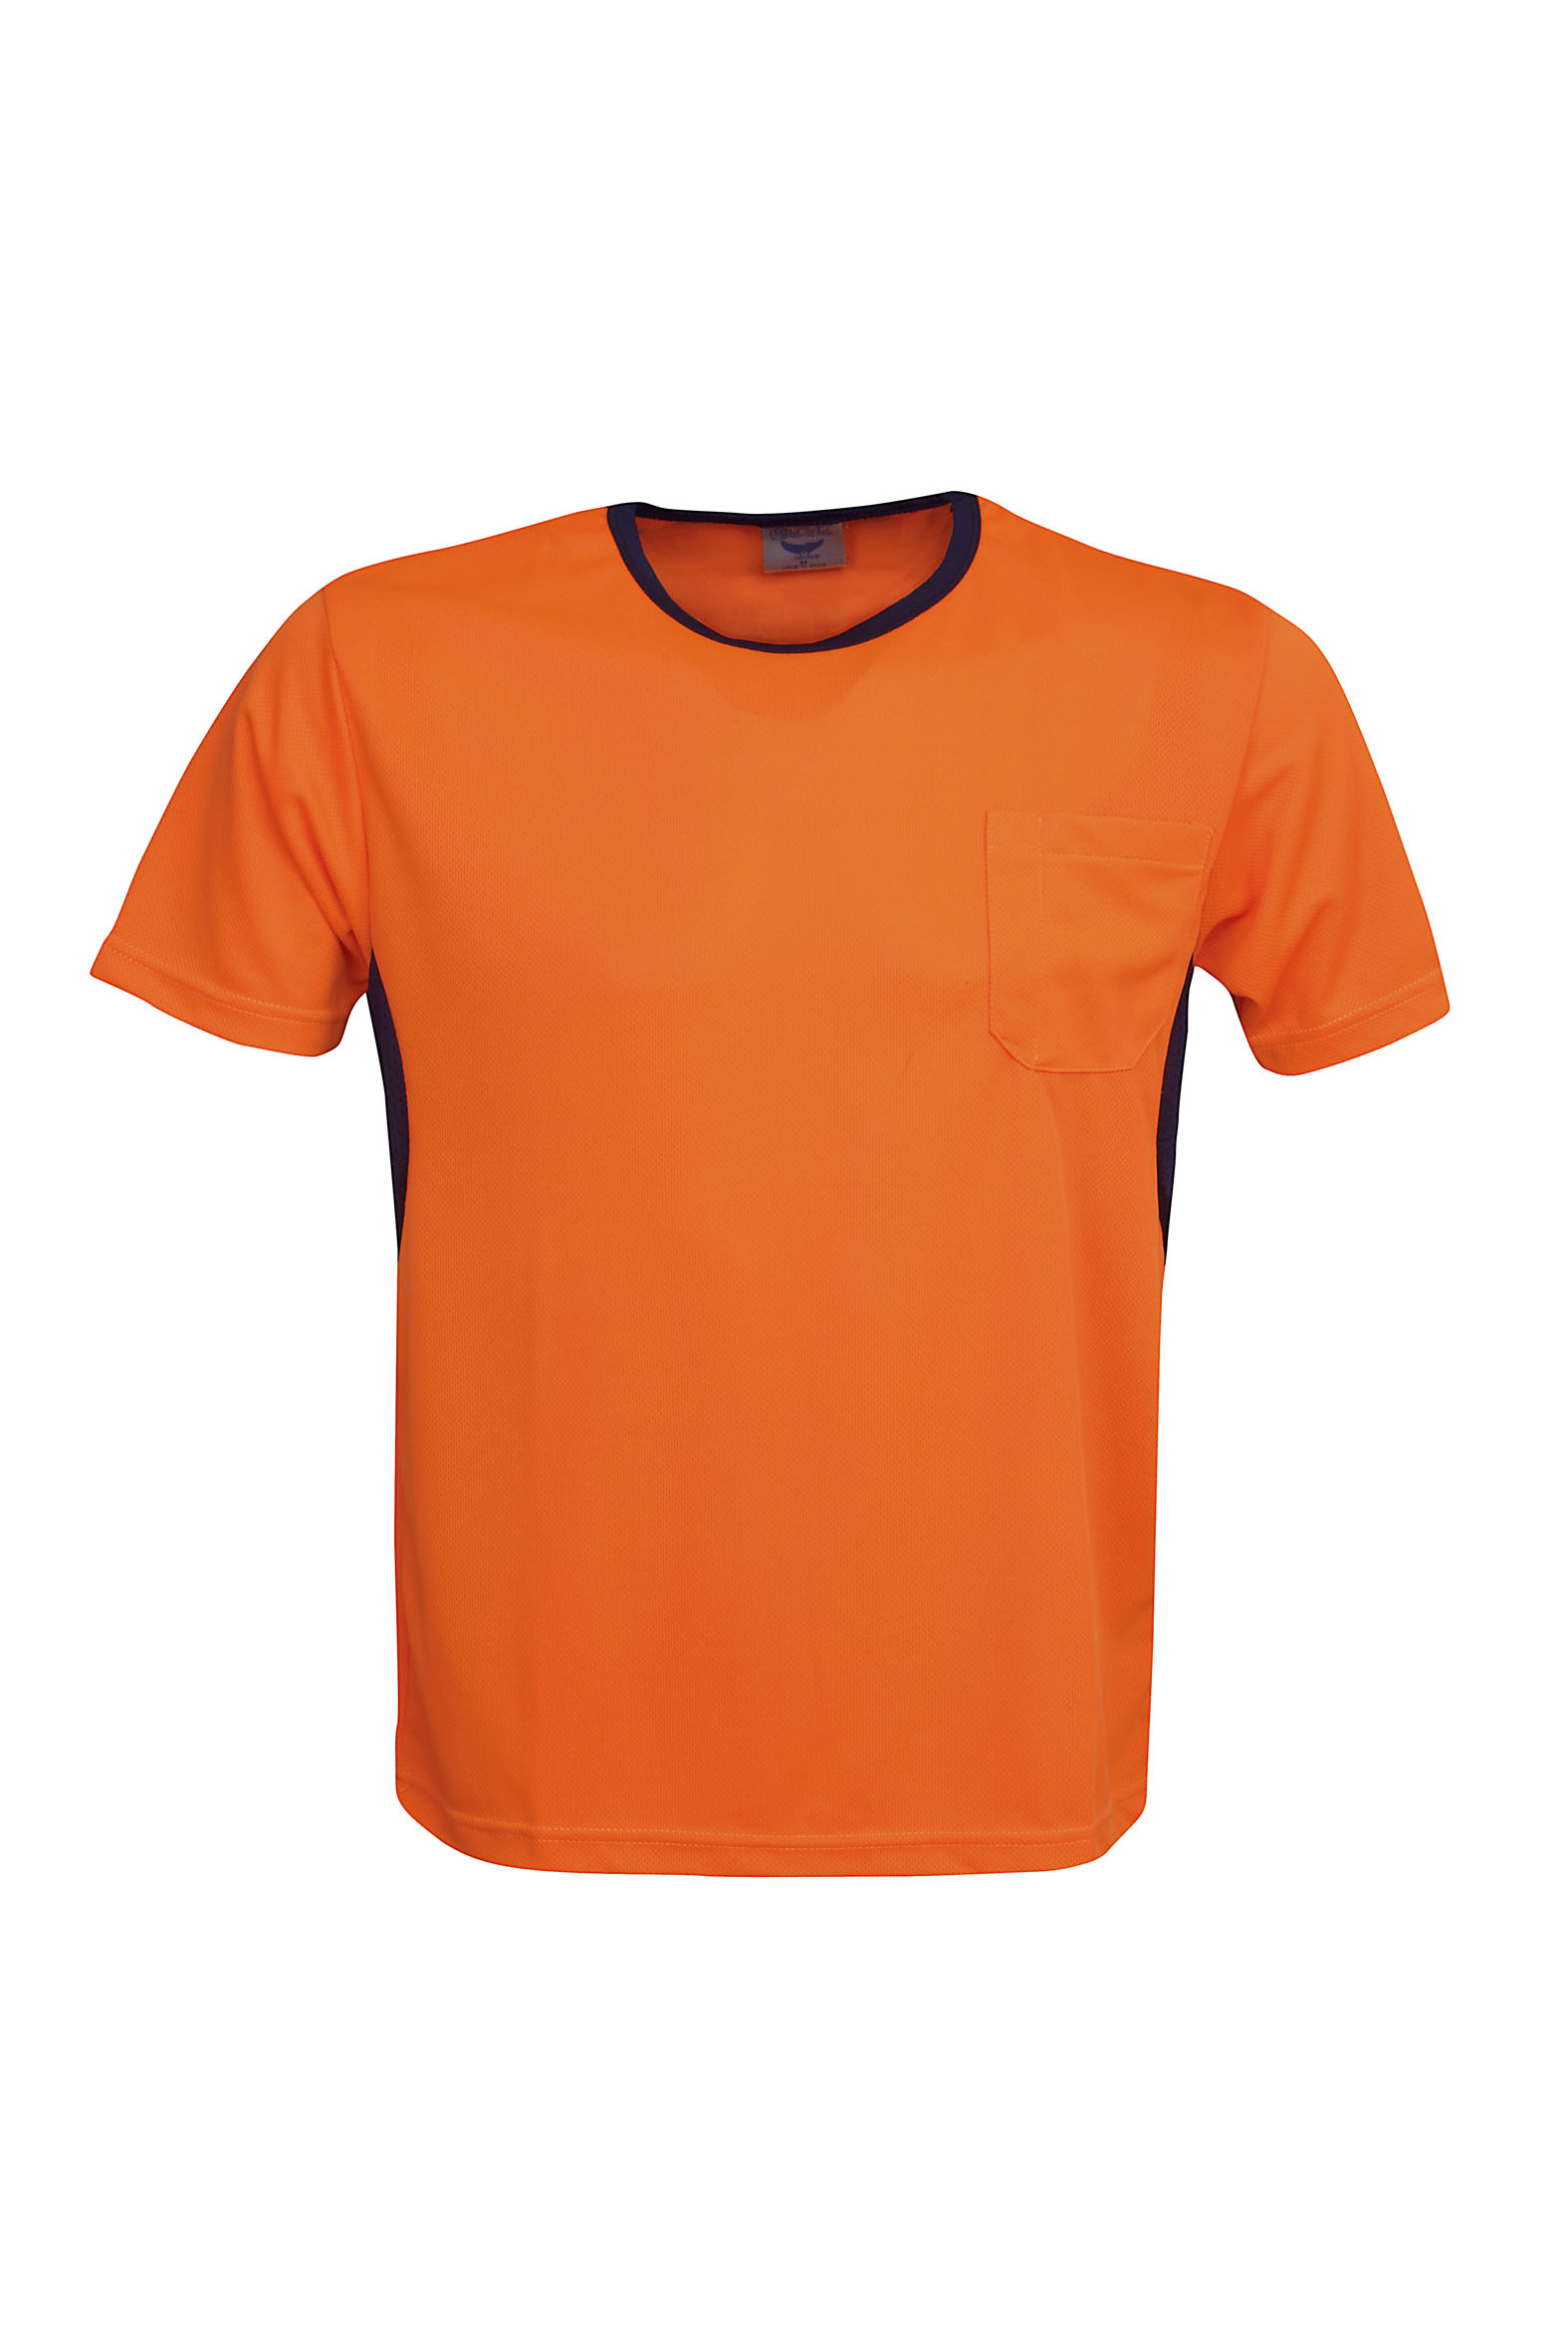 Wholesale Blank T-Shirts, Plain T Shirts, Singlets, Polo ...